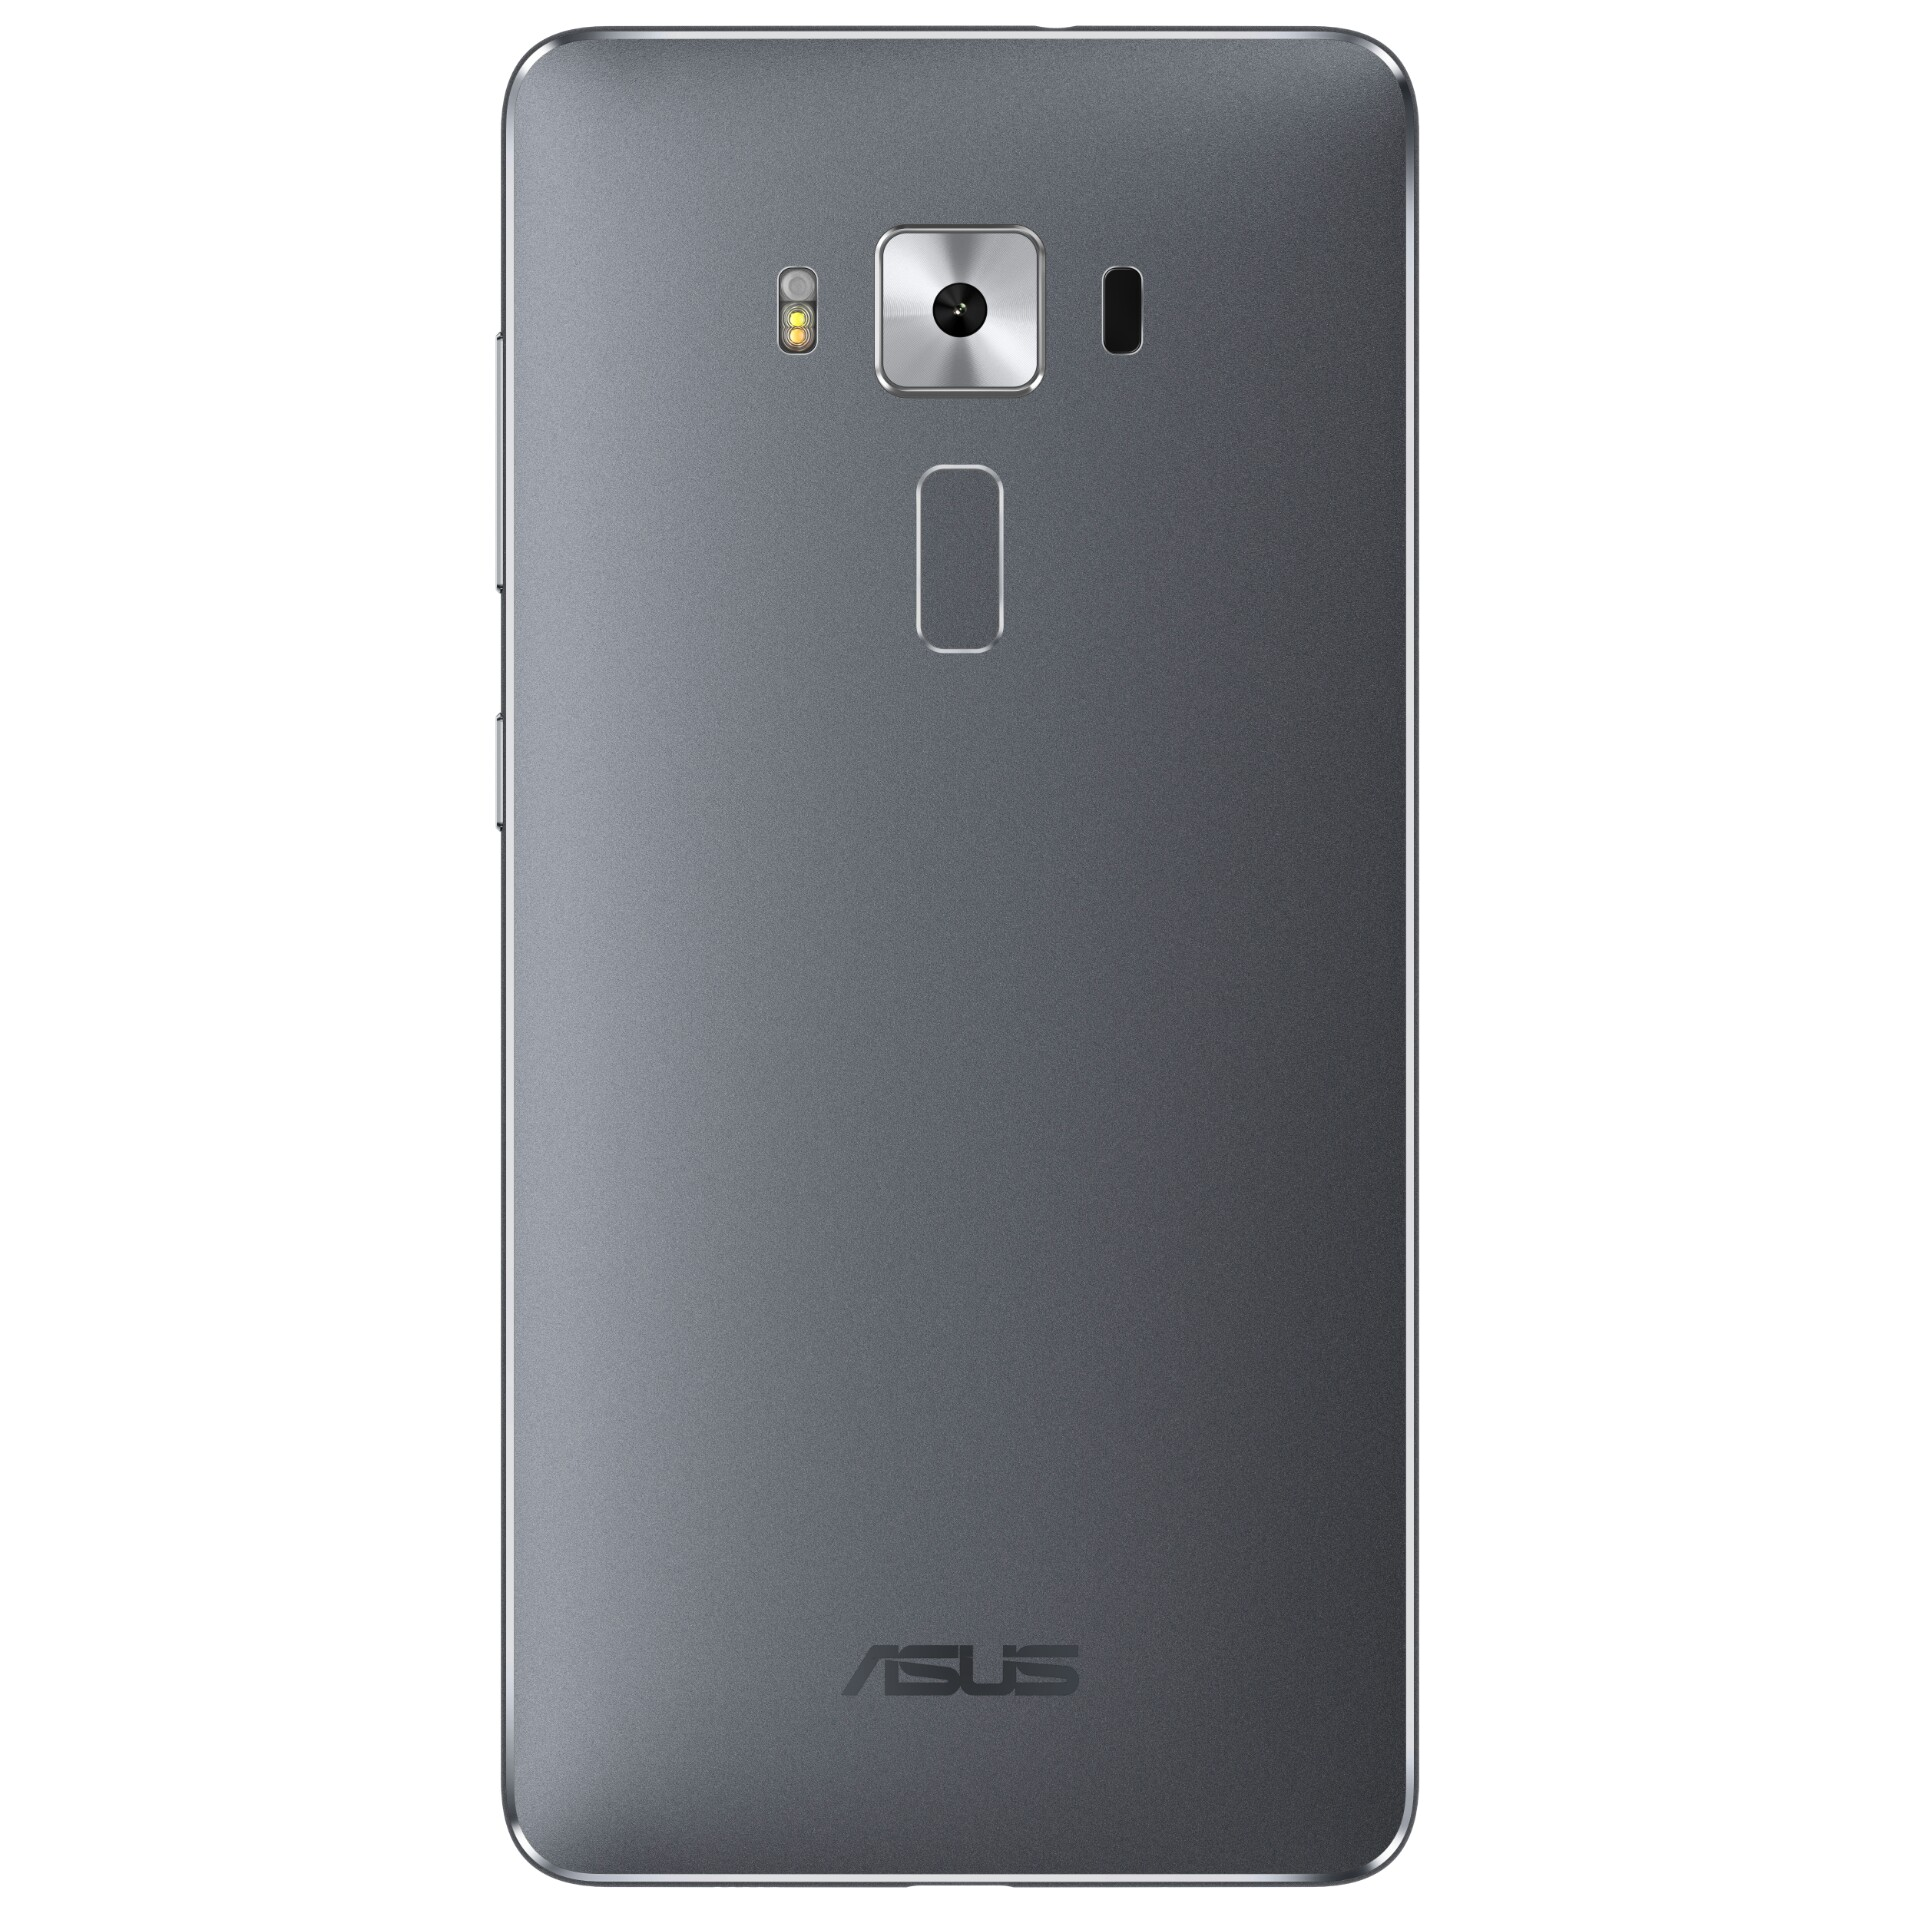 asus unveils zenfone 3 at computex 2016 full details. Black Bedroom Furniture Sets. Home Design Ideas